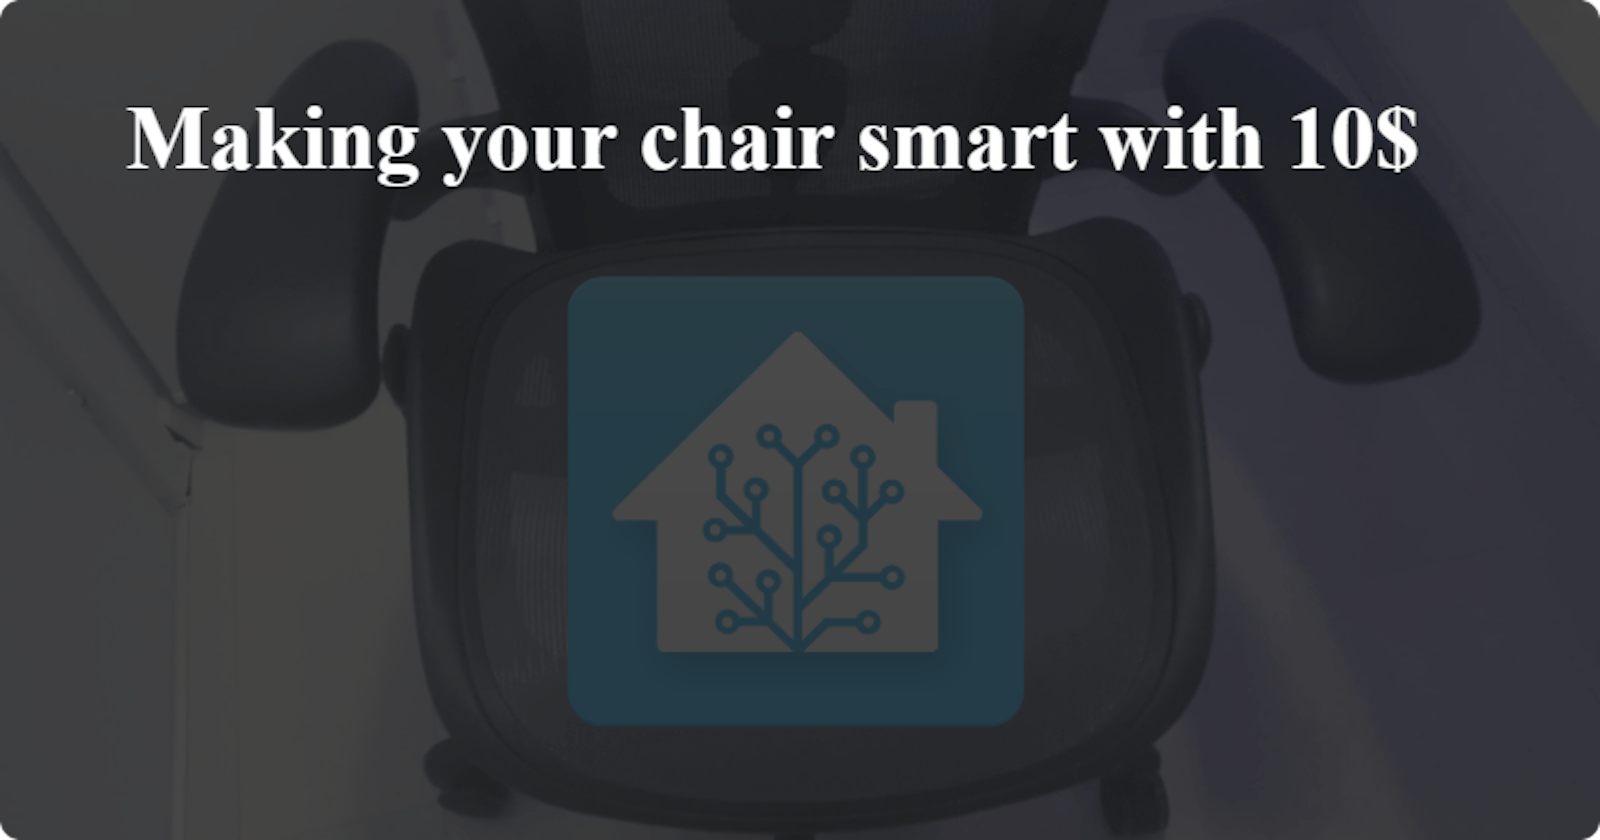 How I made my chair smart with 10$